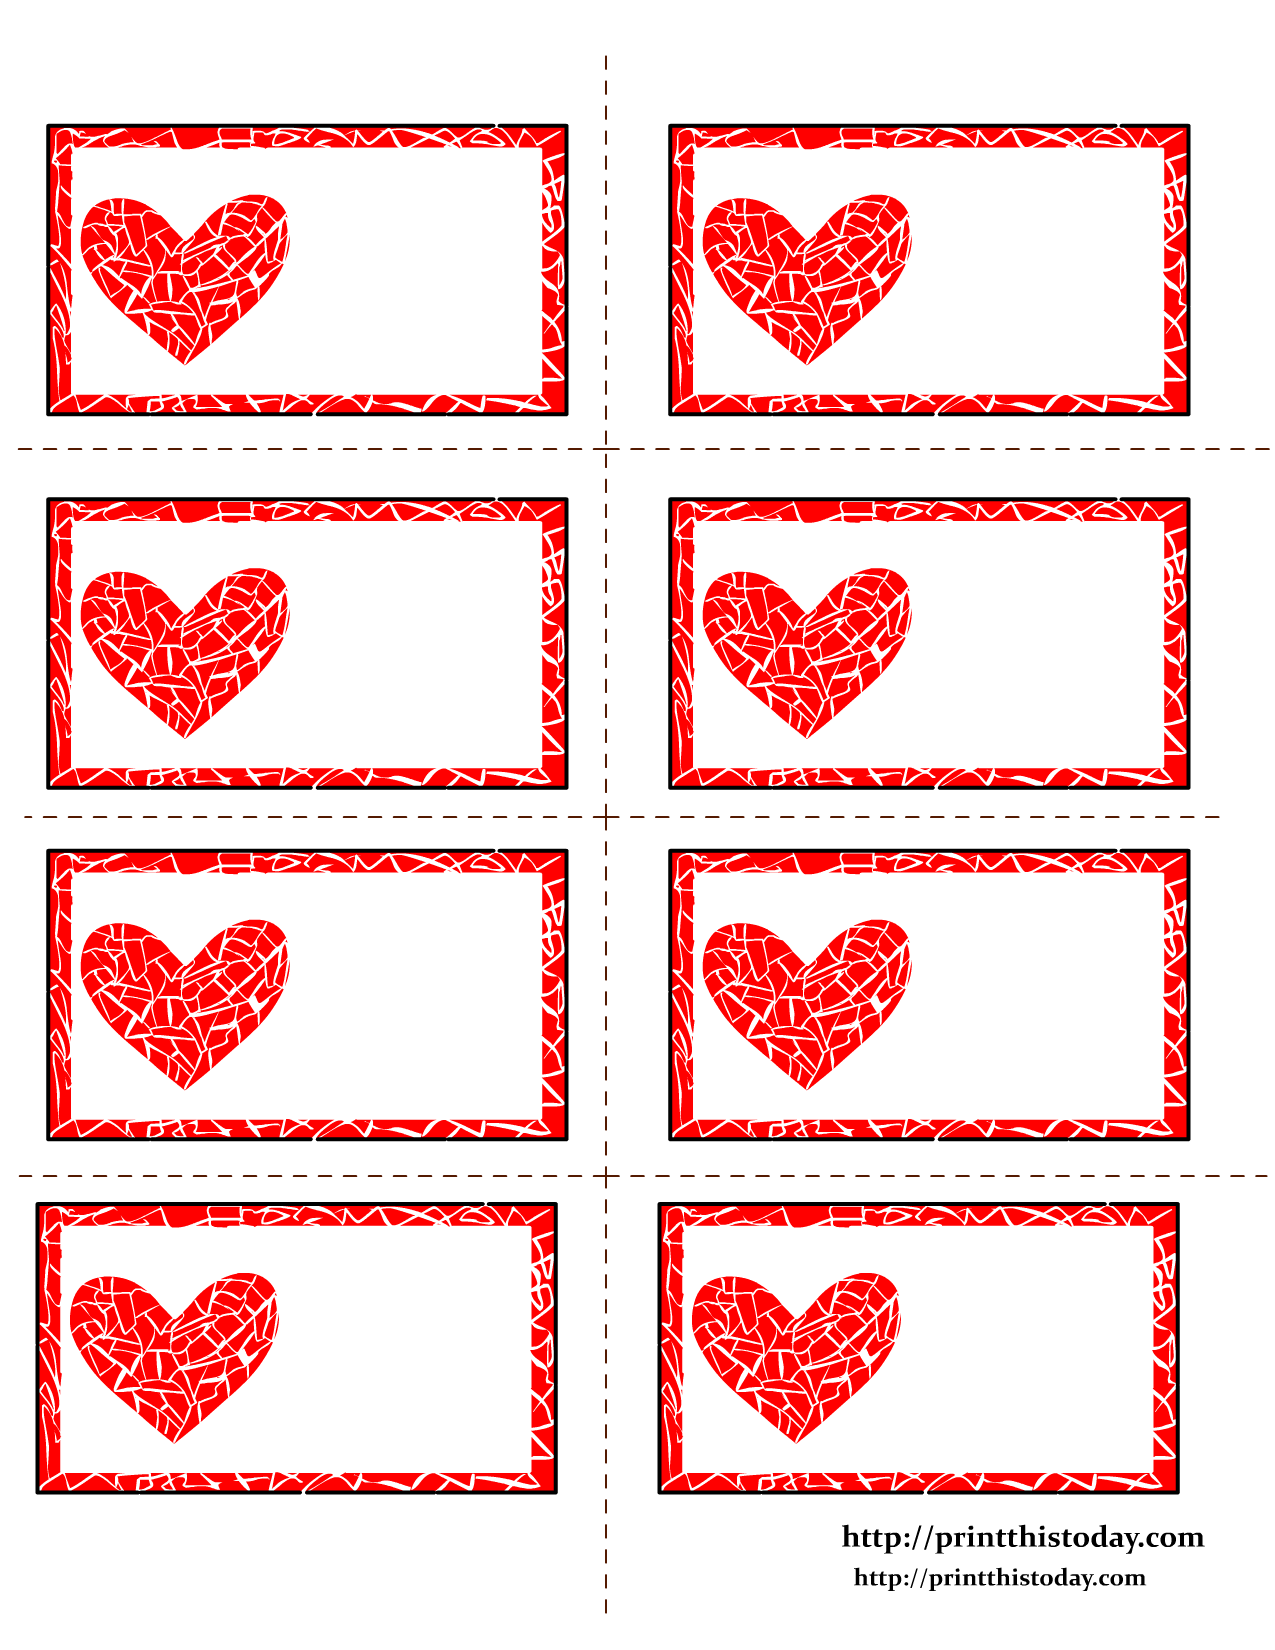 Free printable hearts labels for Free online label templates